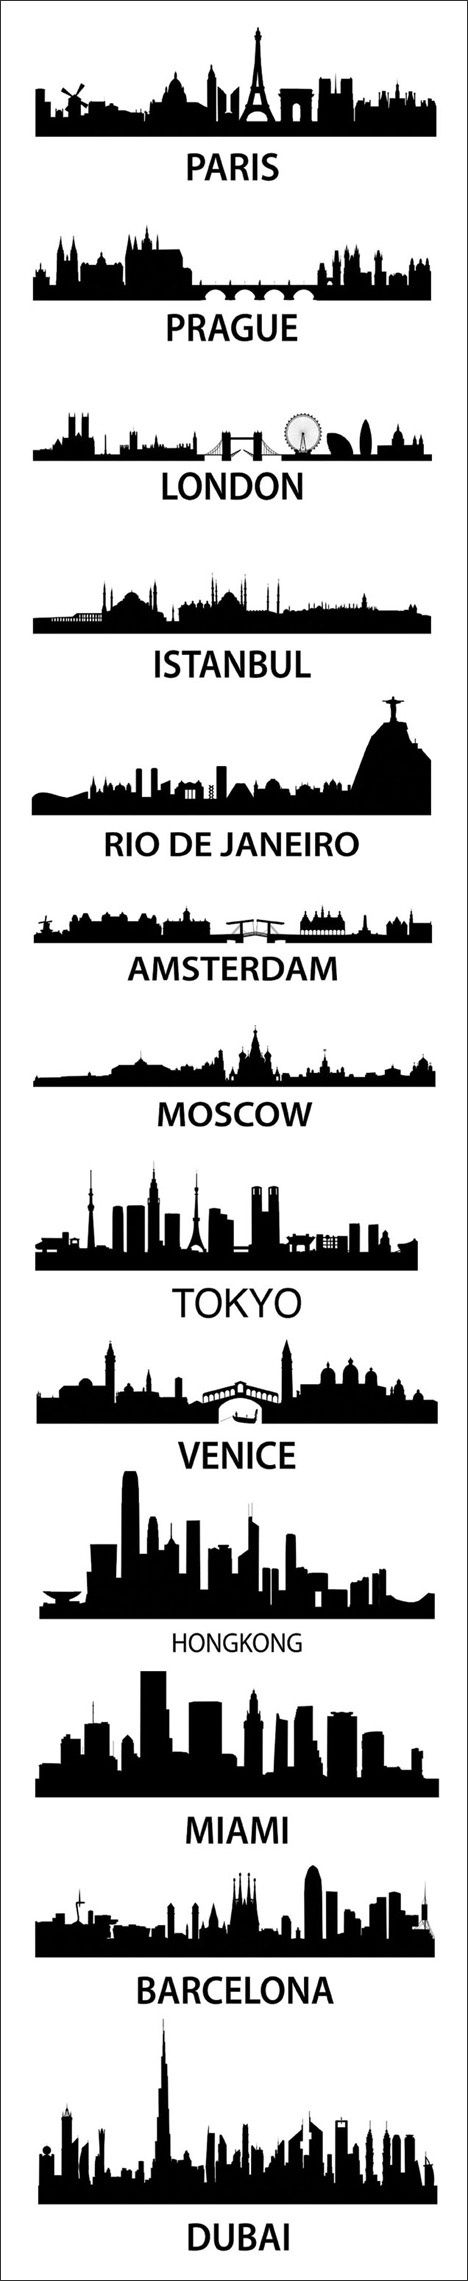 I've been to 5 of these cities!  Now to get to the rest of them... :p